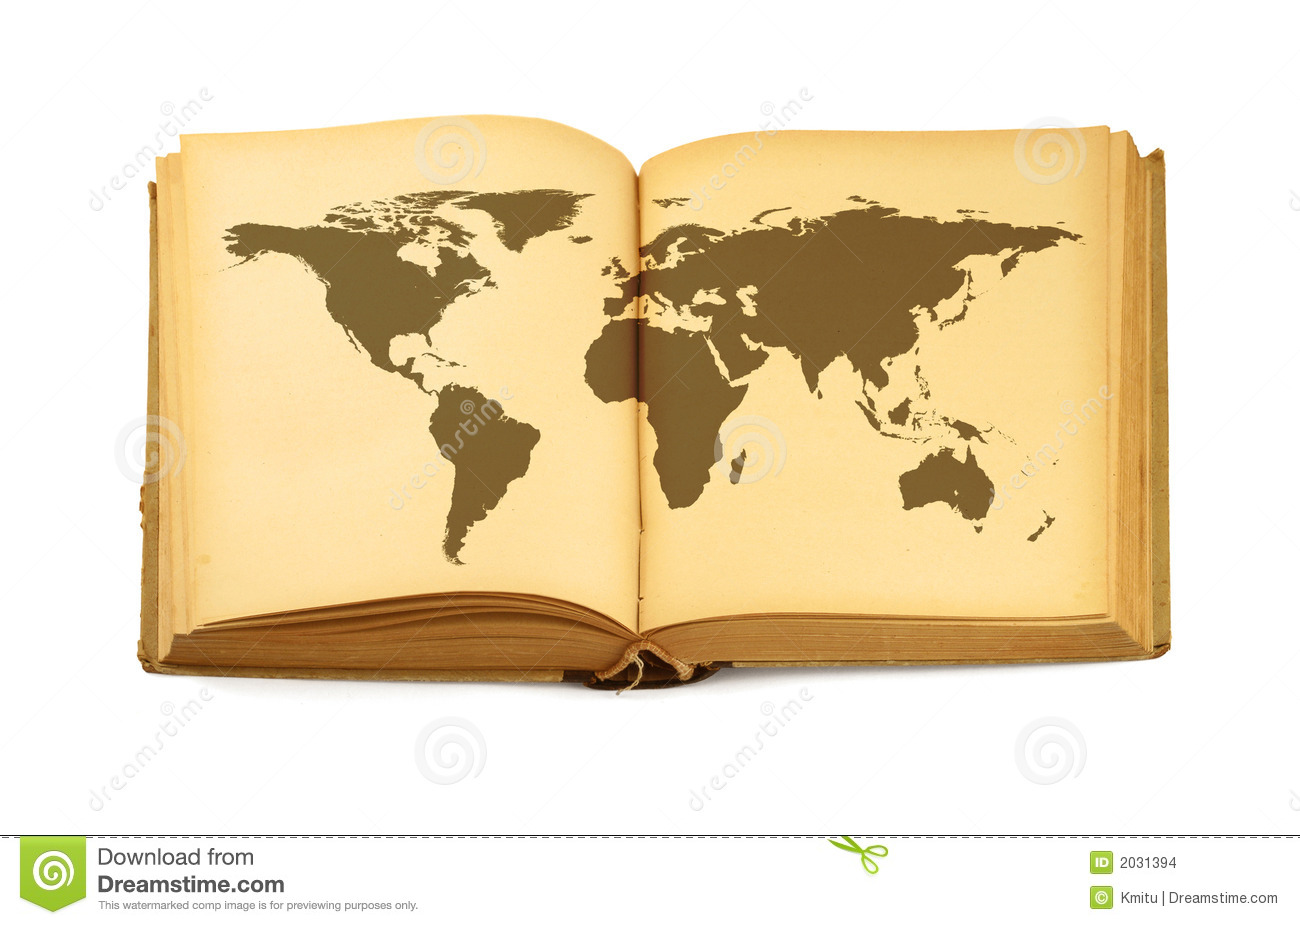 World Atlas Barefoot Books further World Atlas Book Cover in addition World Atlas Political Map as well World Atlas Barefoot Books additionally World Map Kids Books. on textbook world map